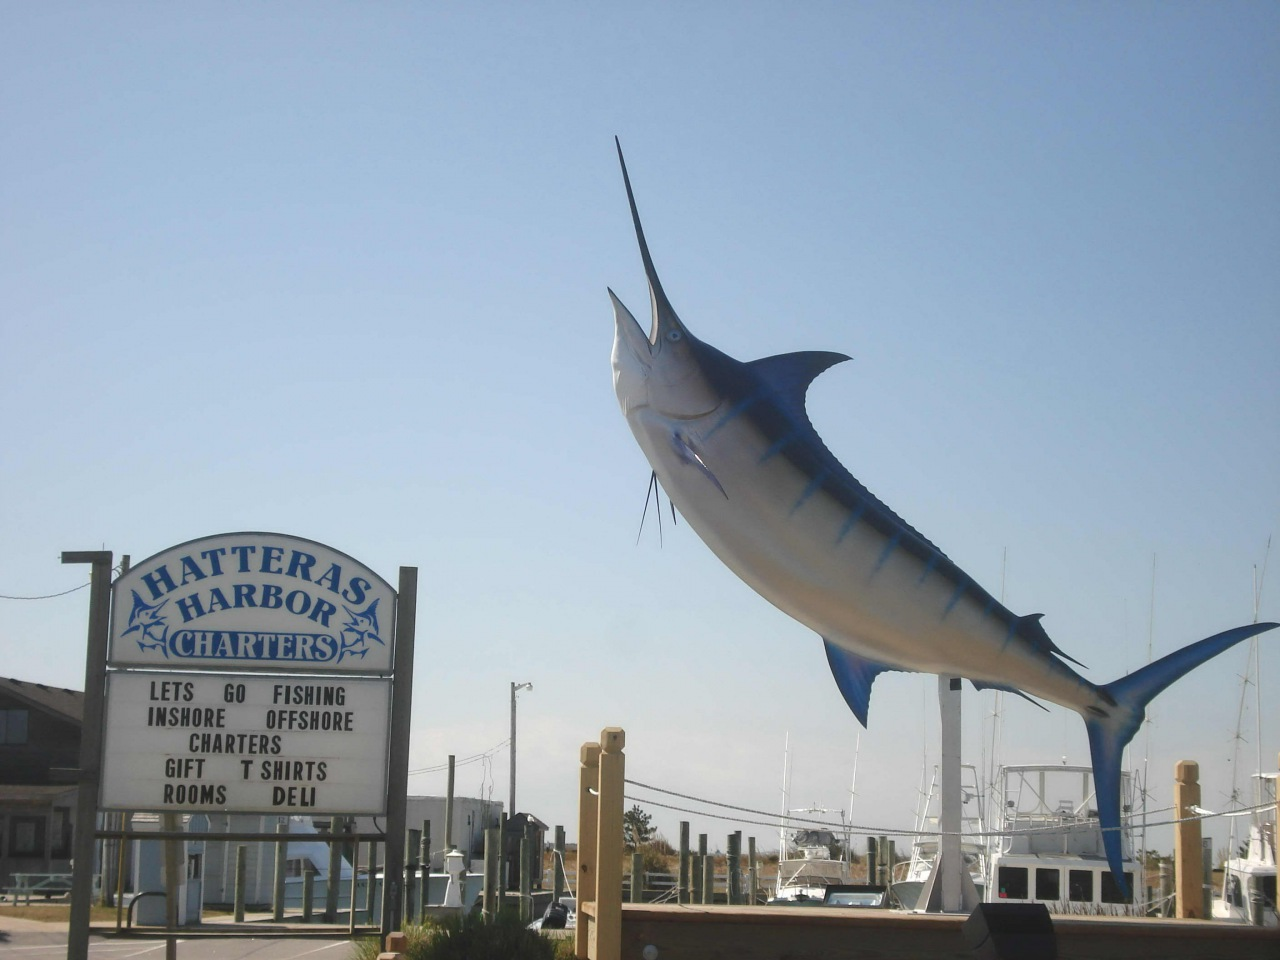 Charters in Hatteras | Snag-A-Slip